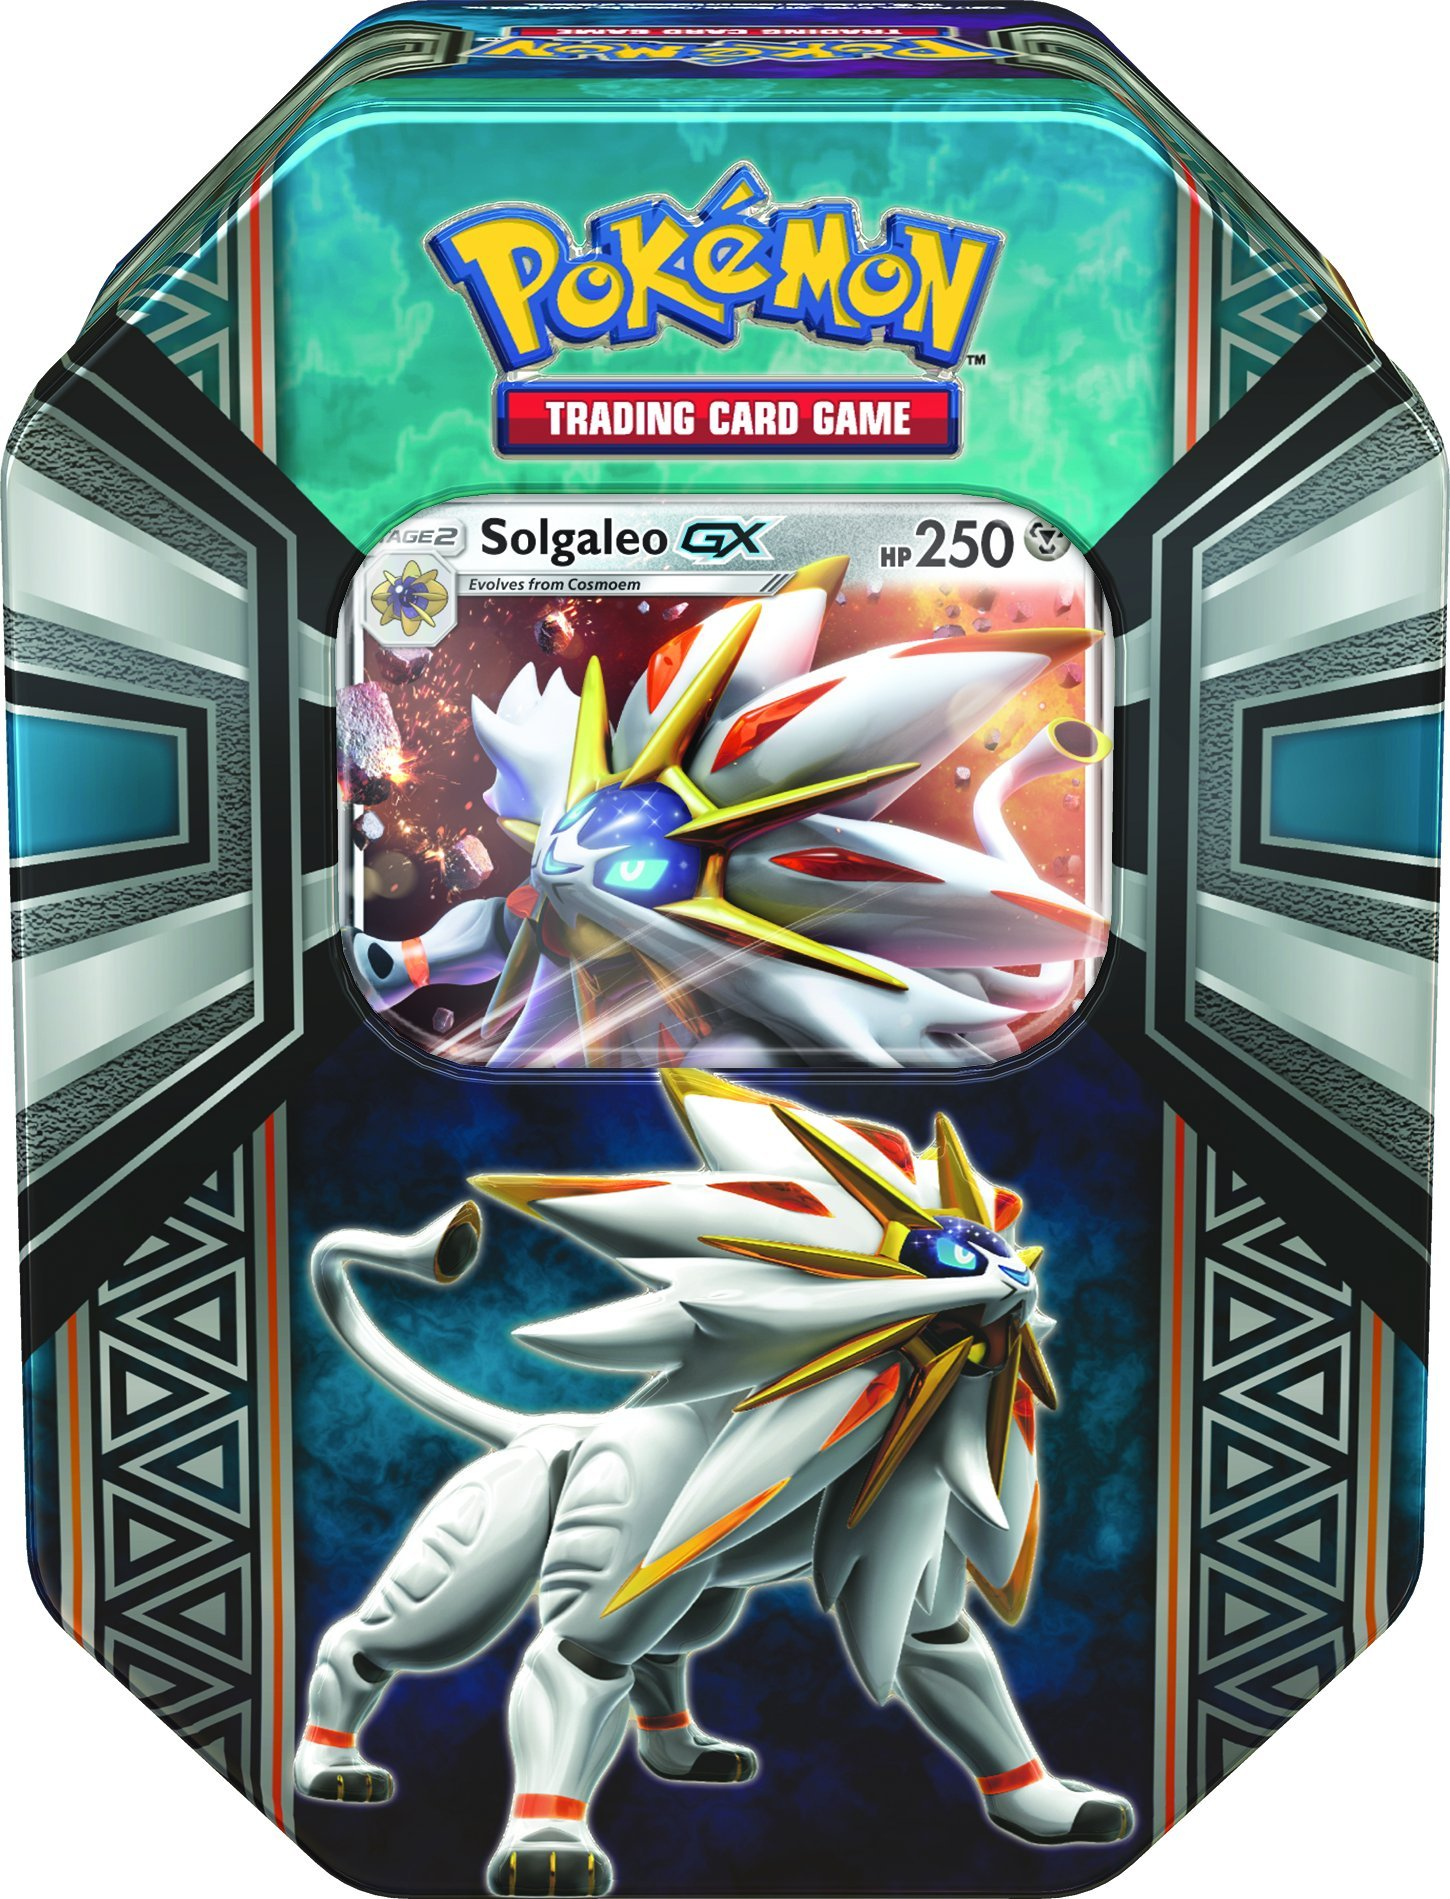 Pokemon TCG Legends of Alola Tin Card Game, Solgaleo GX or Lunala GX by Pokemon